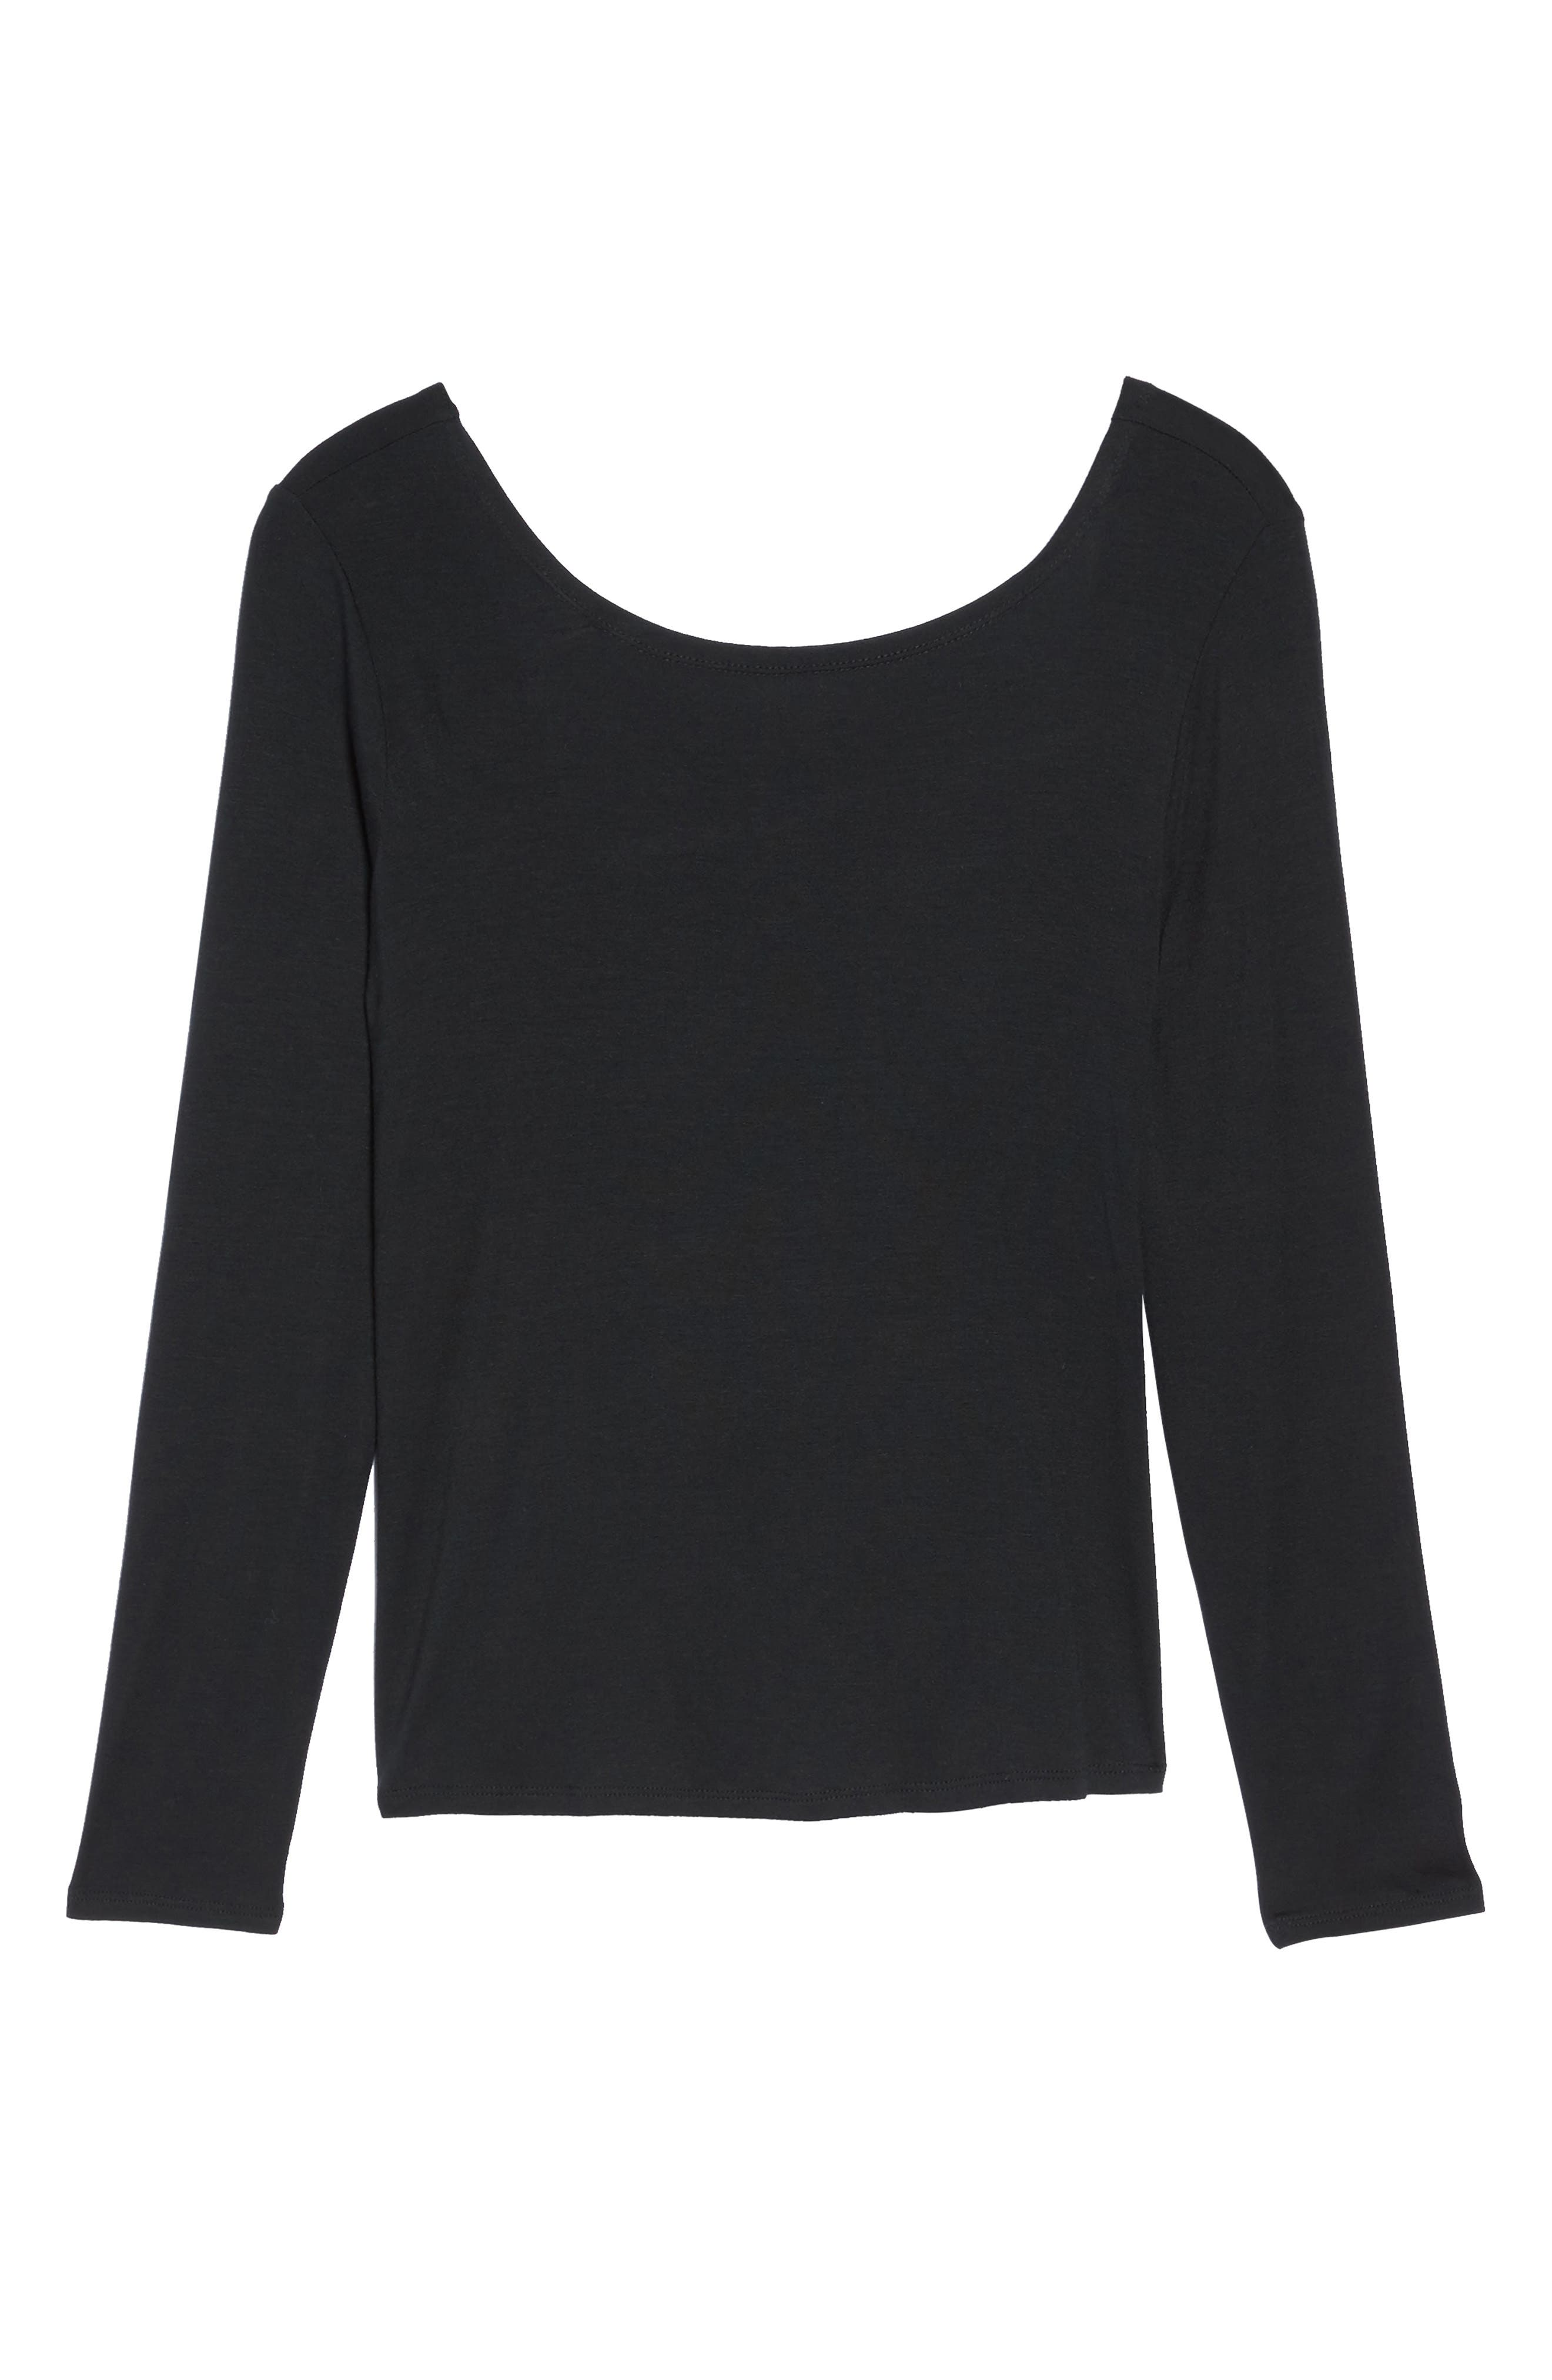 Twist of Fate Pullover,                             Alternate thumbnail 7, color,                             001